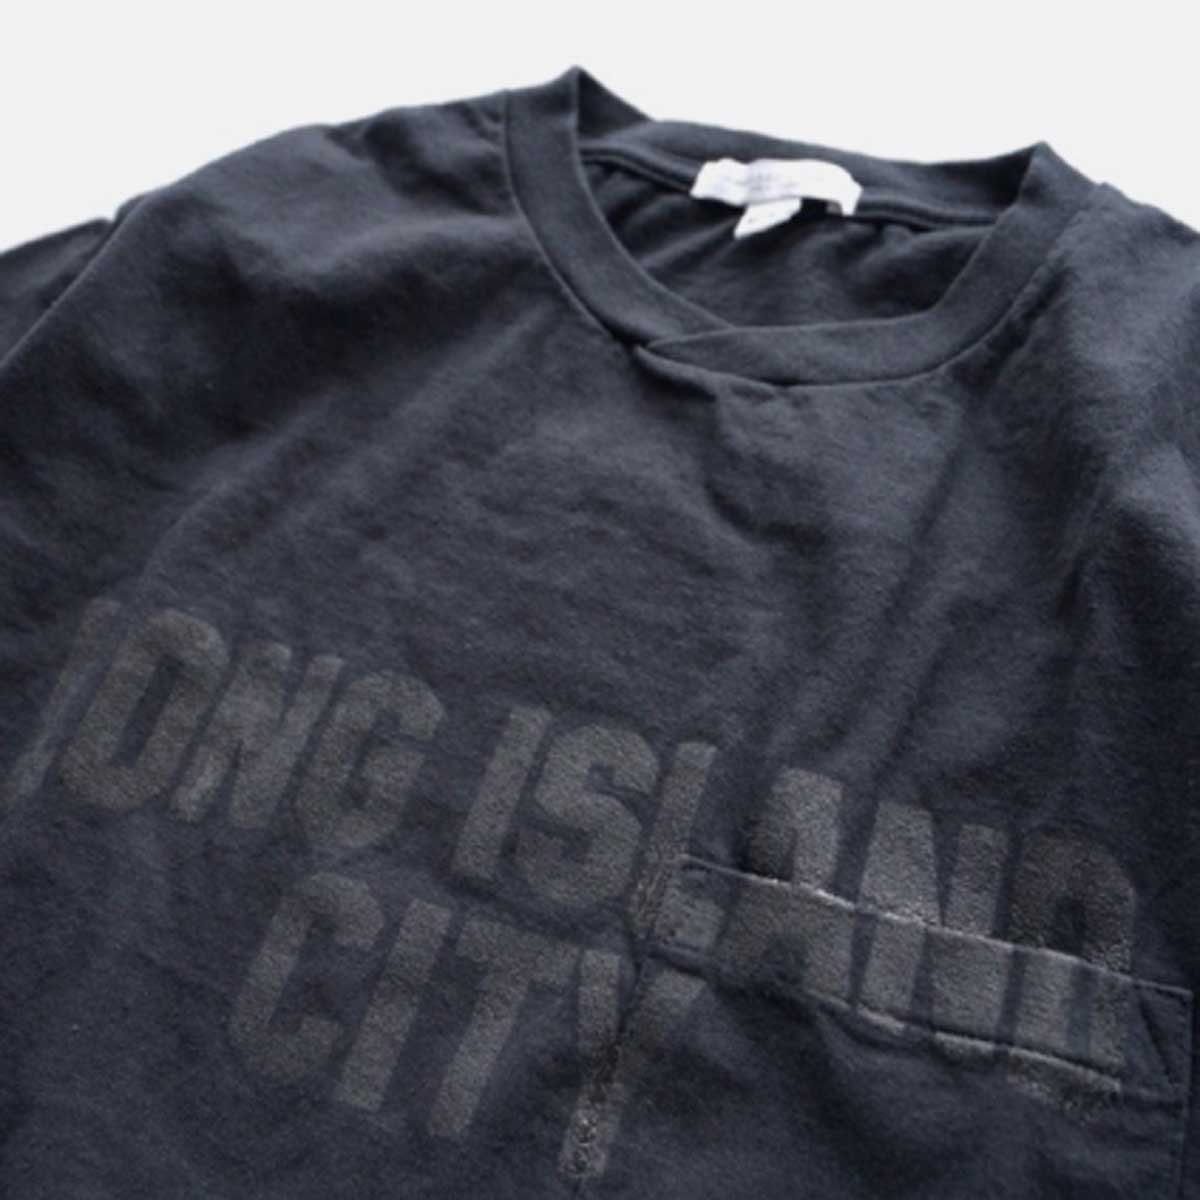 Engineered Garments Printed Cross Crew Neck T-shirt - LONG ISLAND CITY  (NAVY)4